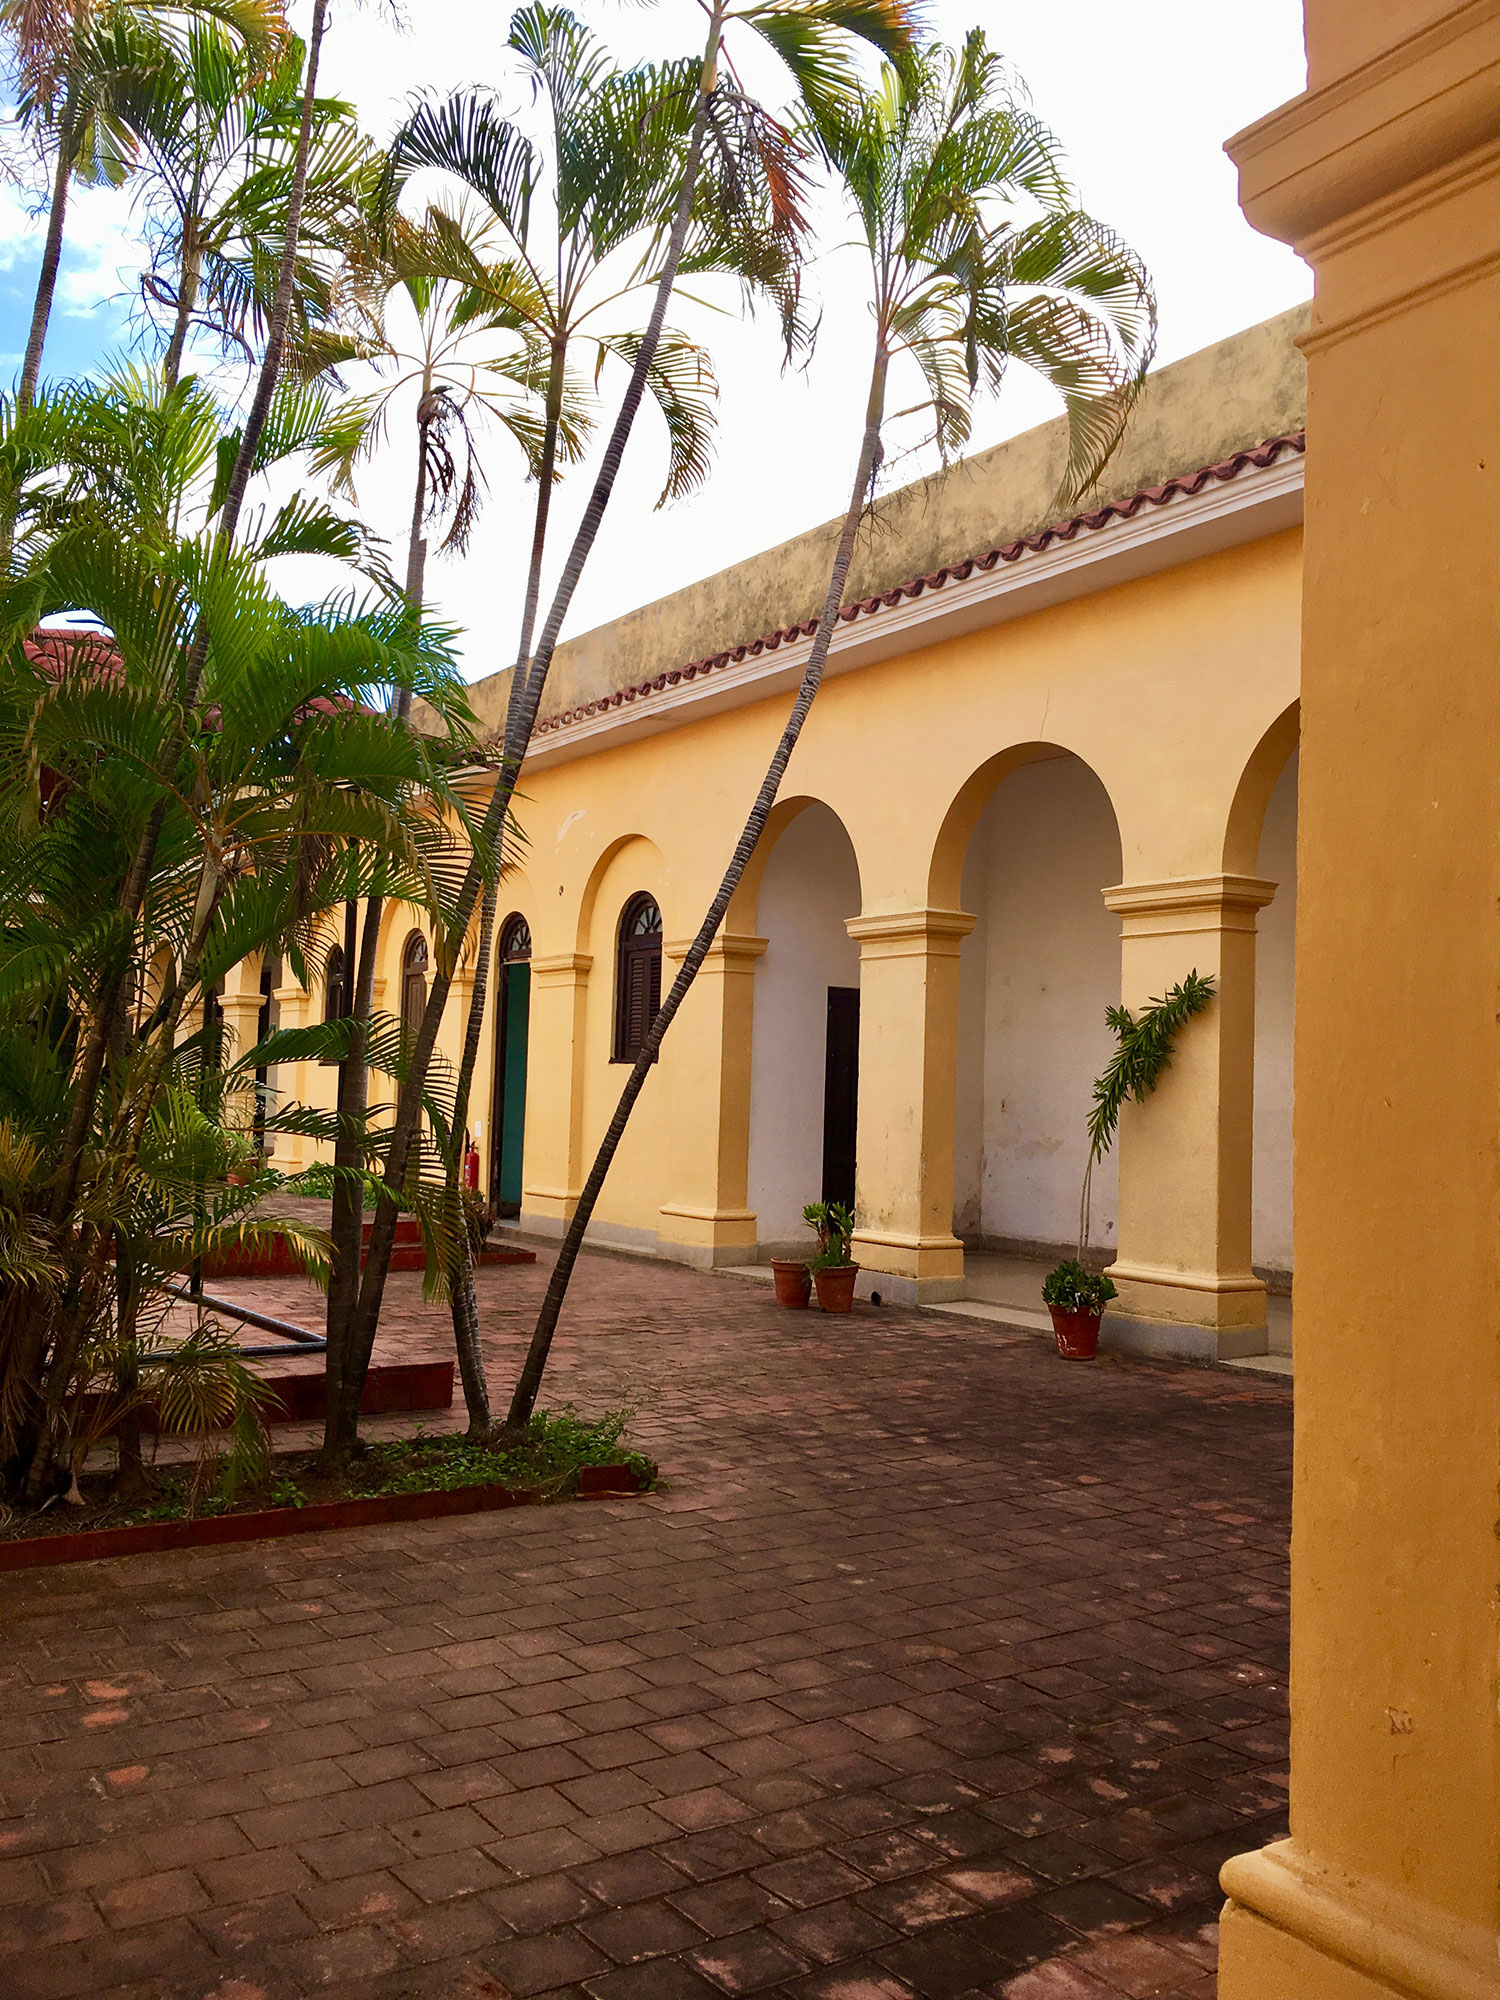 The arched corridors of the former convent.